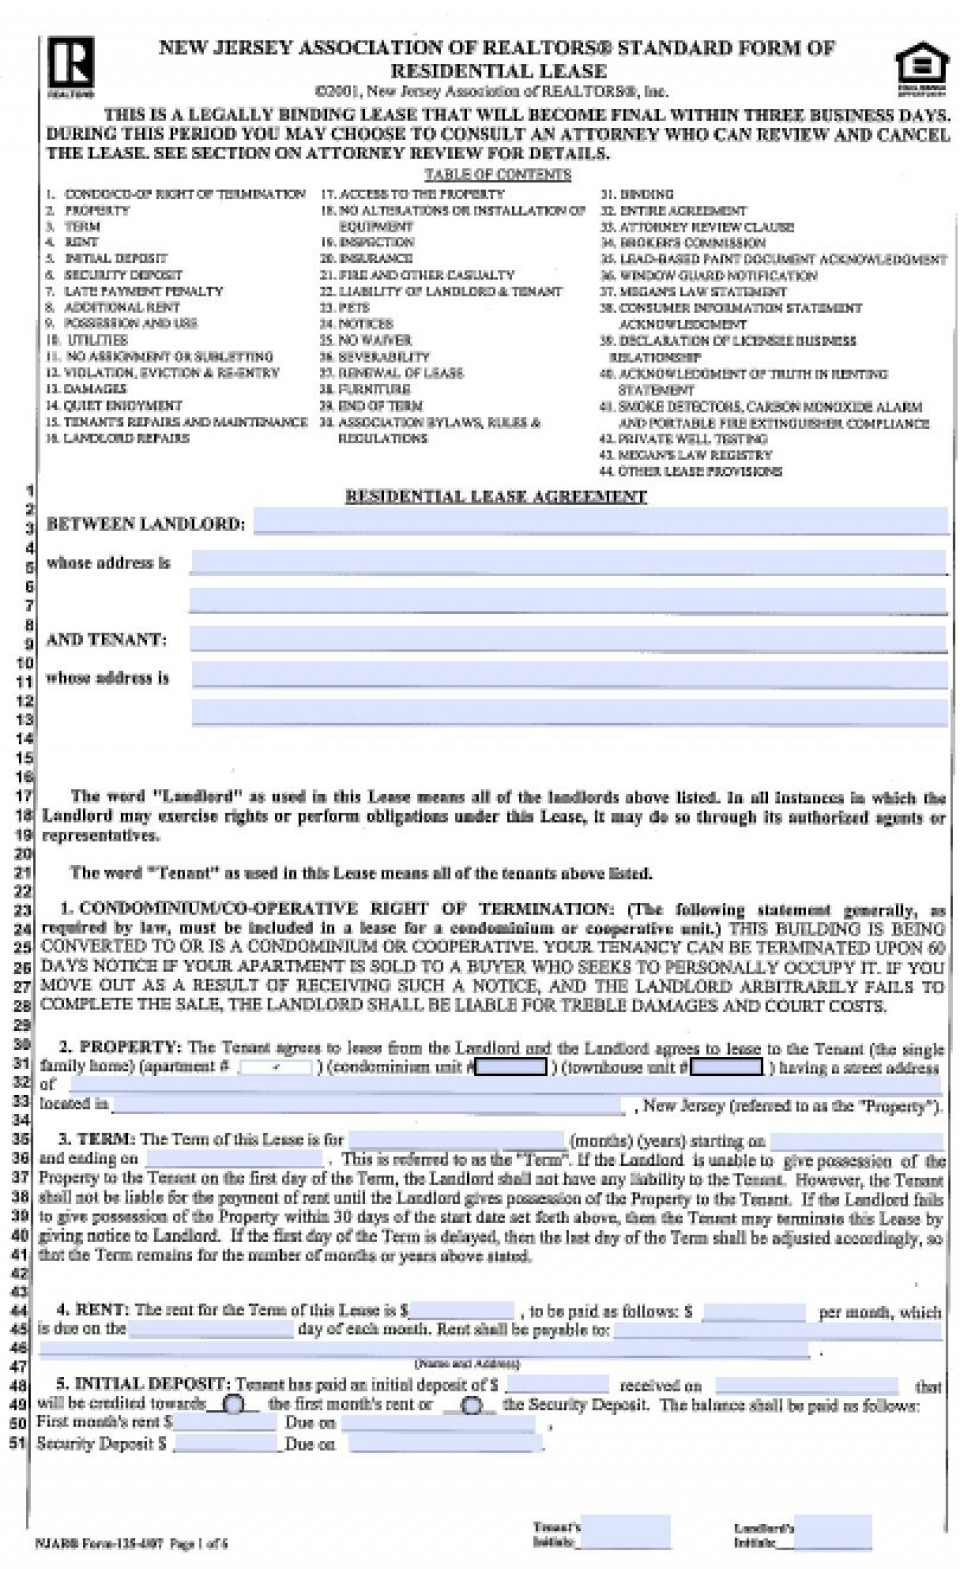 004 Archaicawful Generic Rental Lease Agreement Nj Design  Sample960